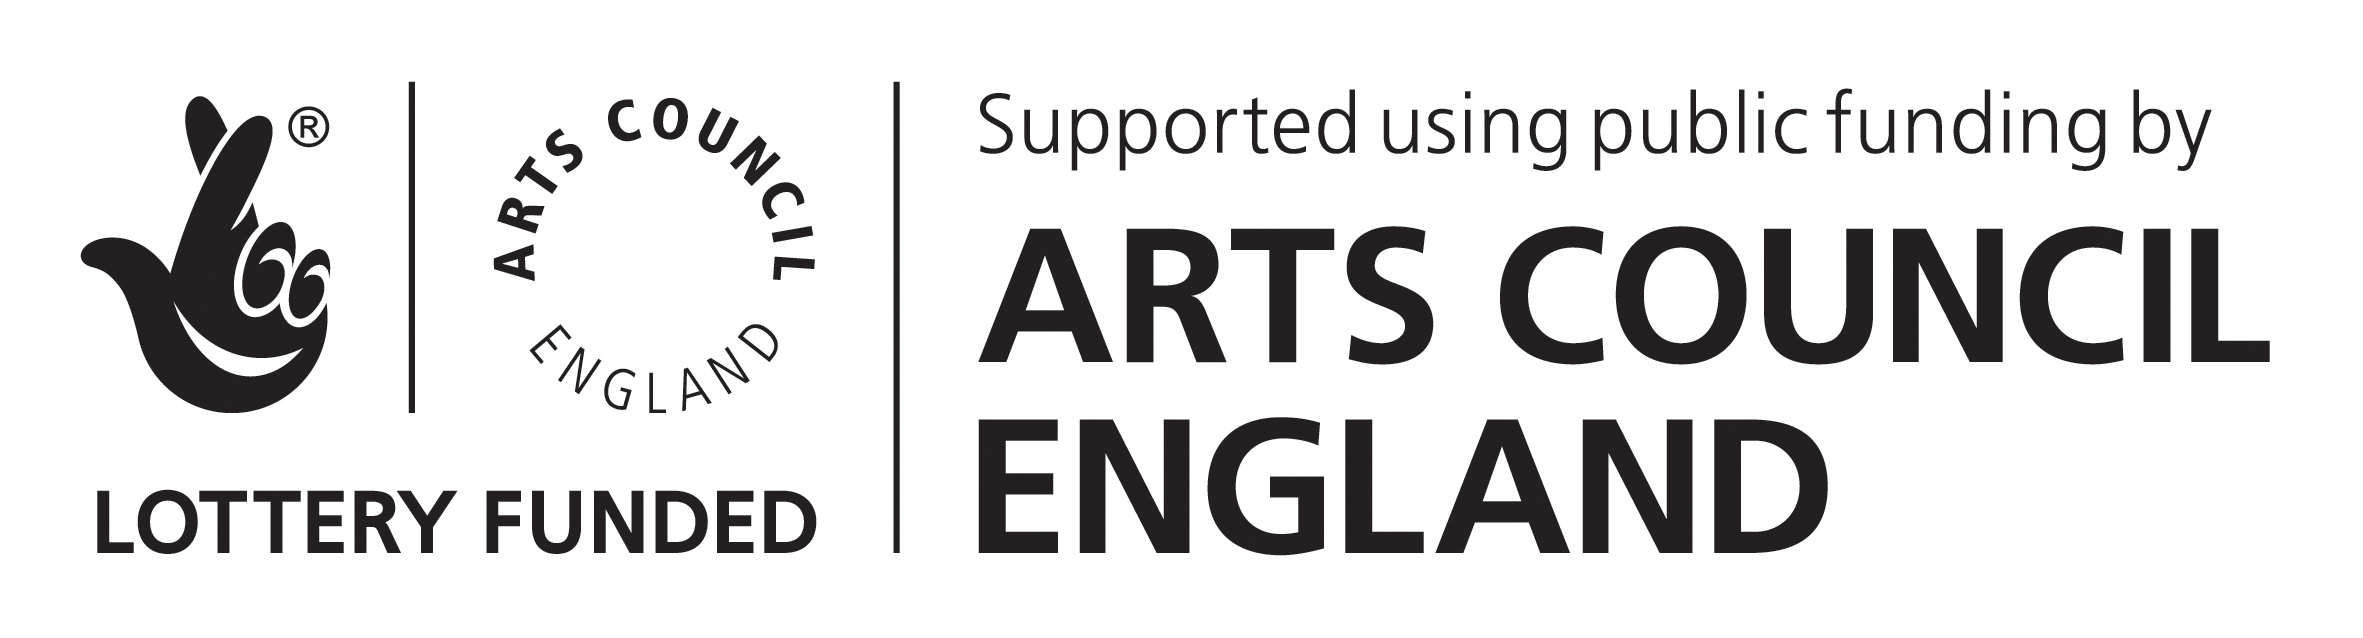 Arts Council Lottery Funding Logo